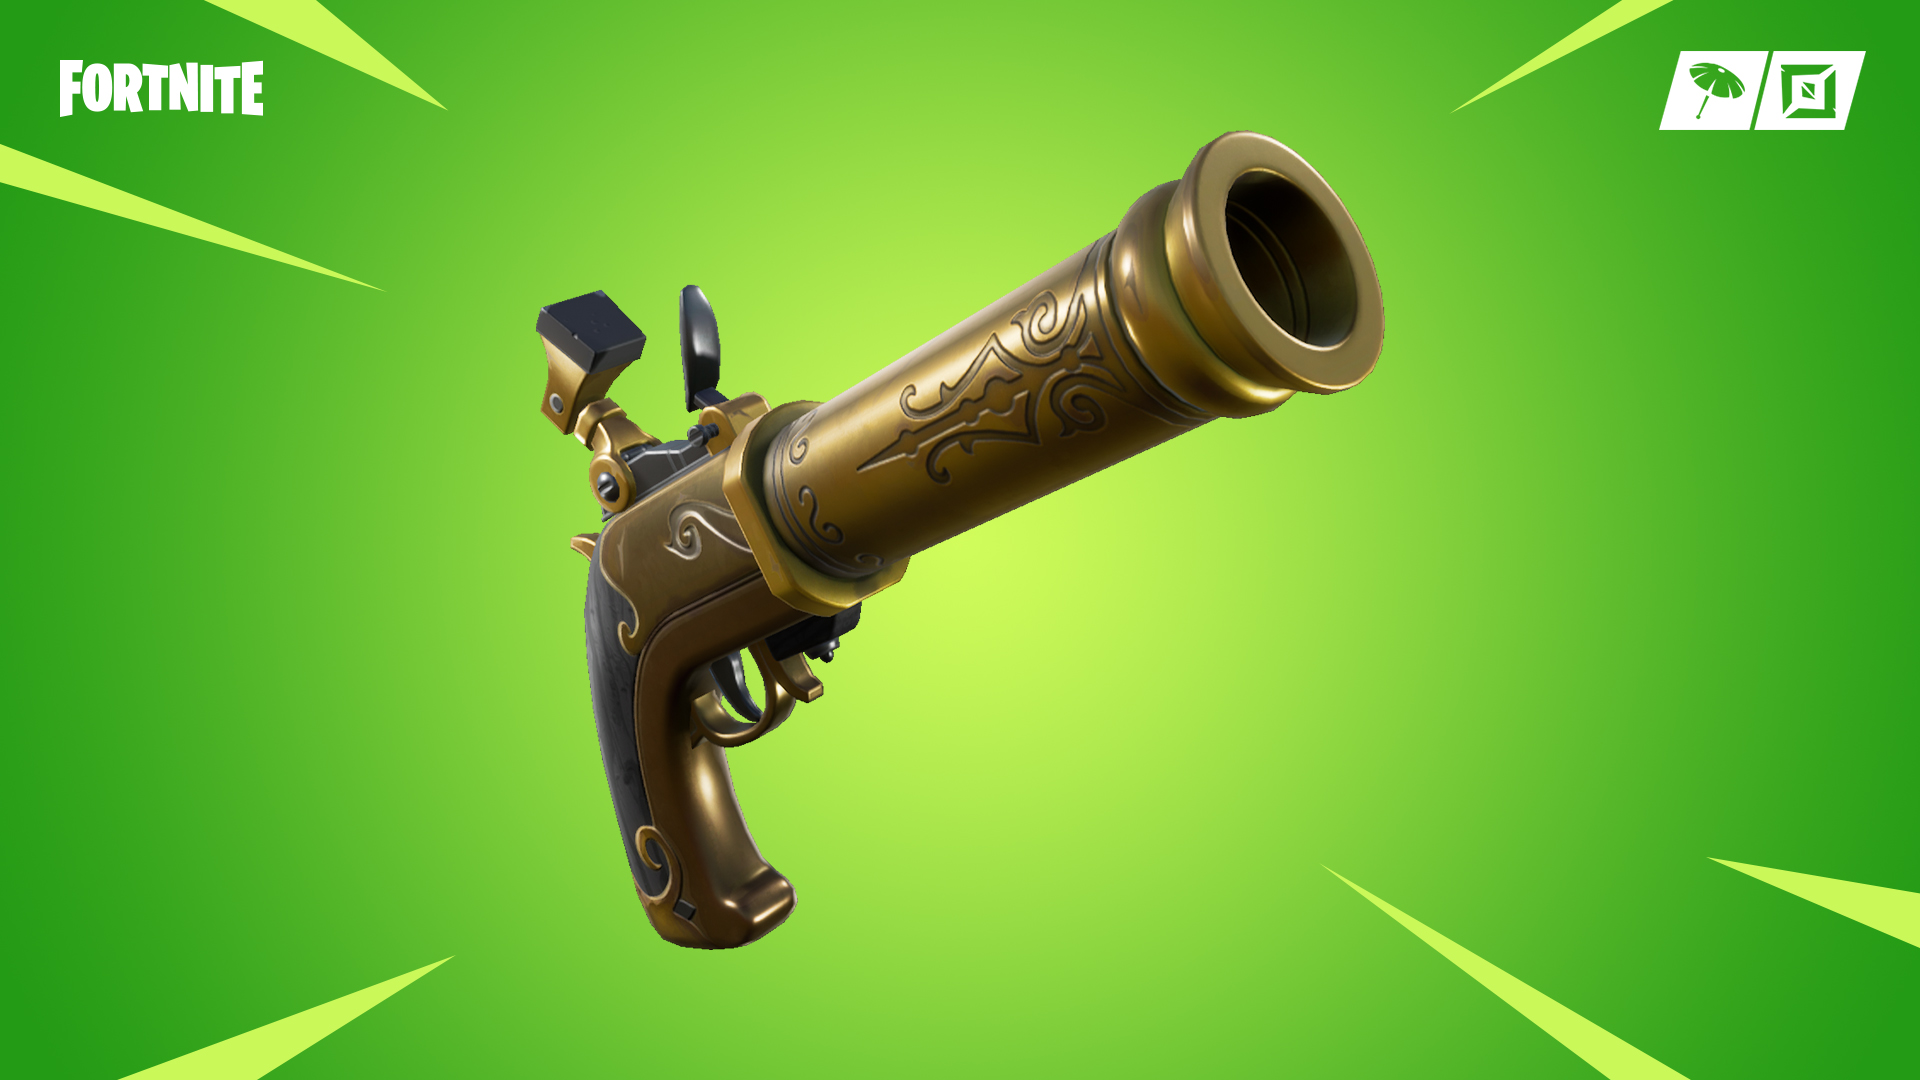 Pistol in Fortnite Week 4 Challenges